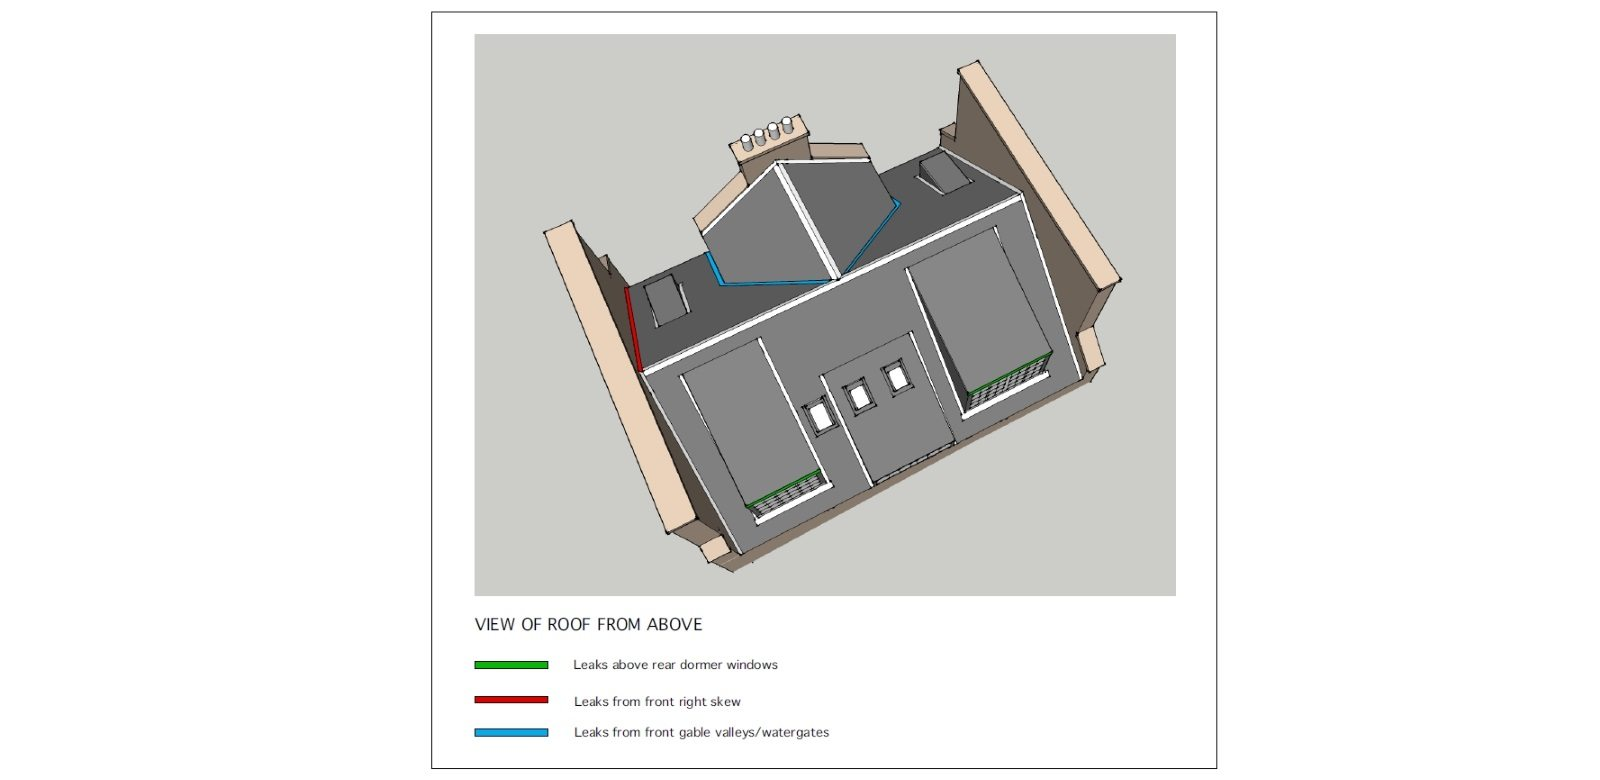 Architect expert witness report extract - Ross Smith & Jameson Architecture